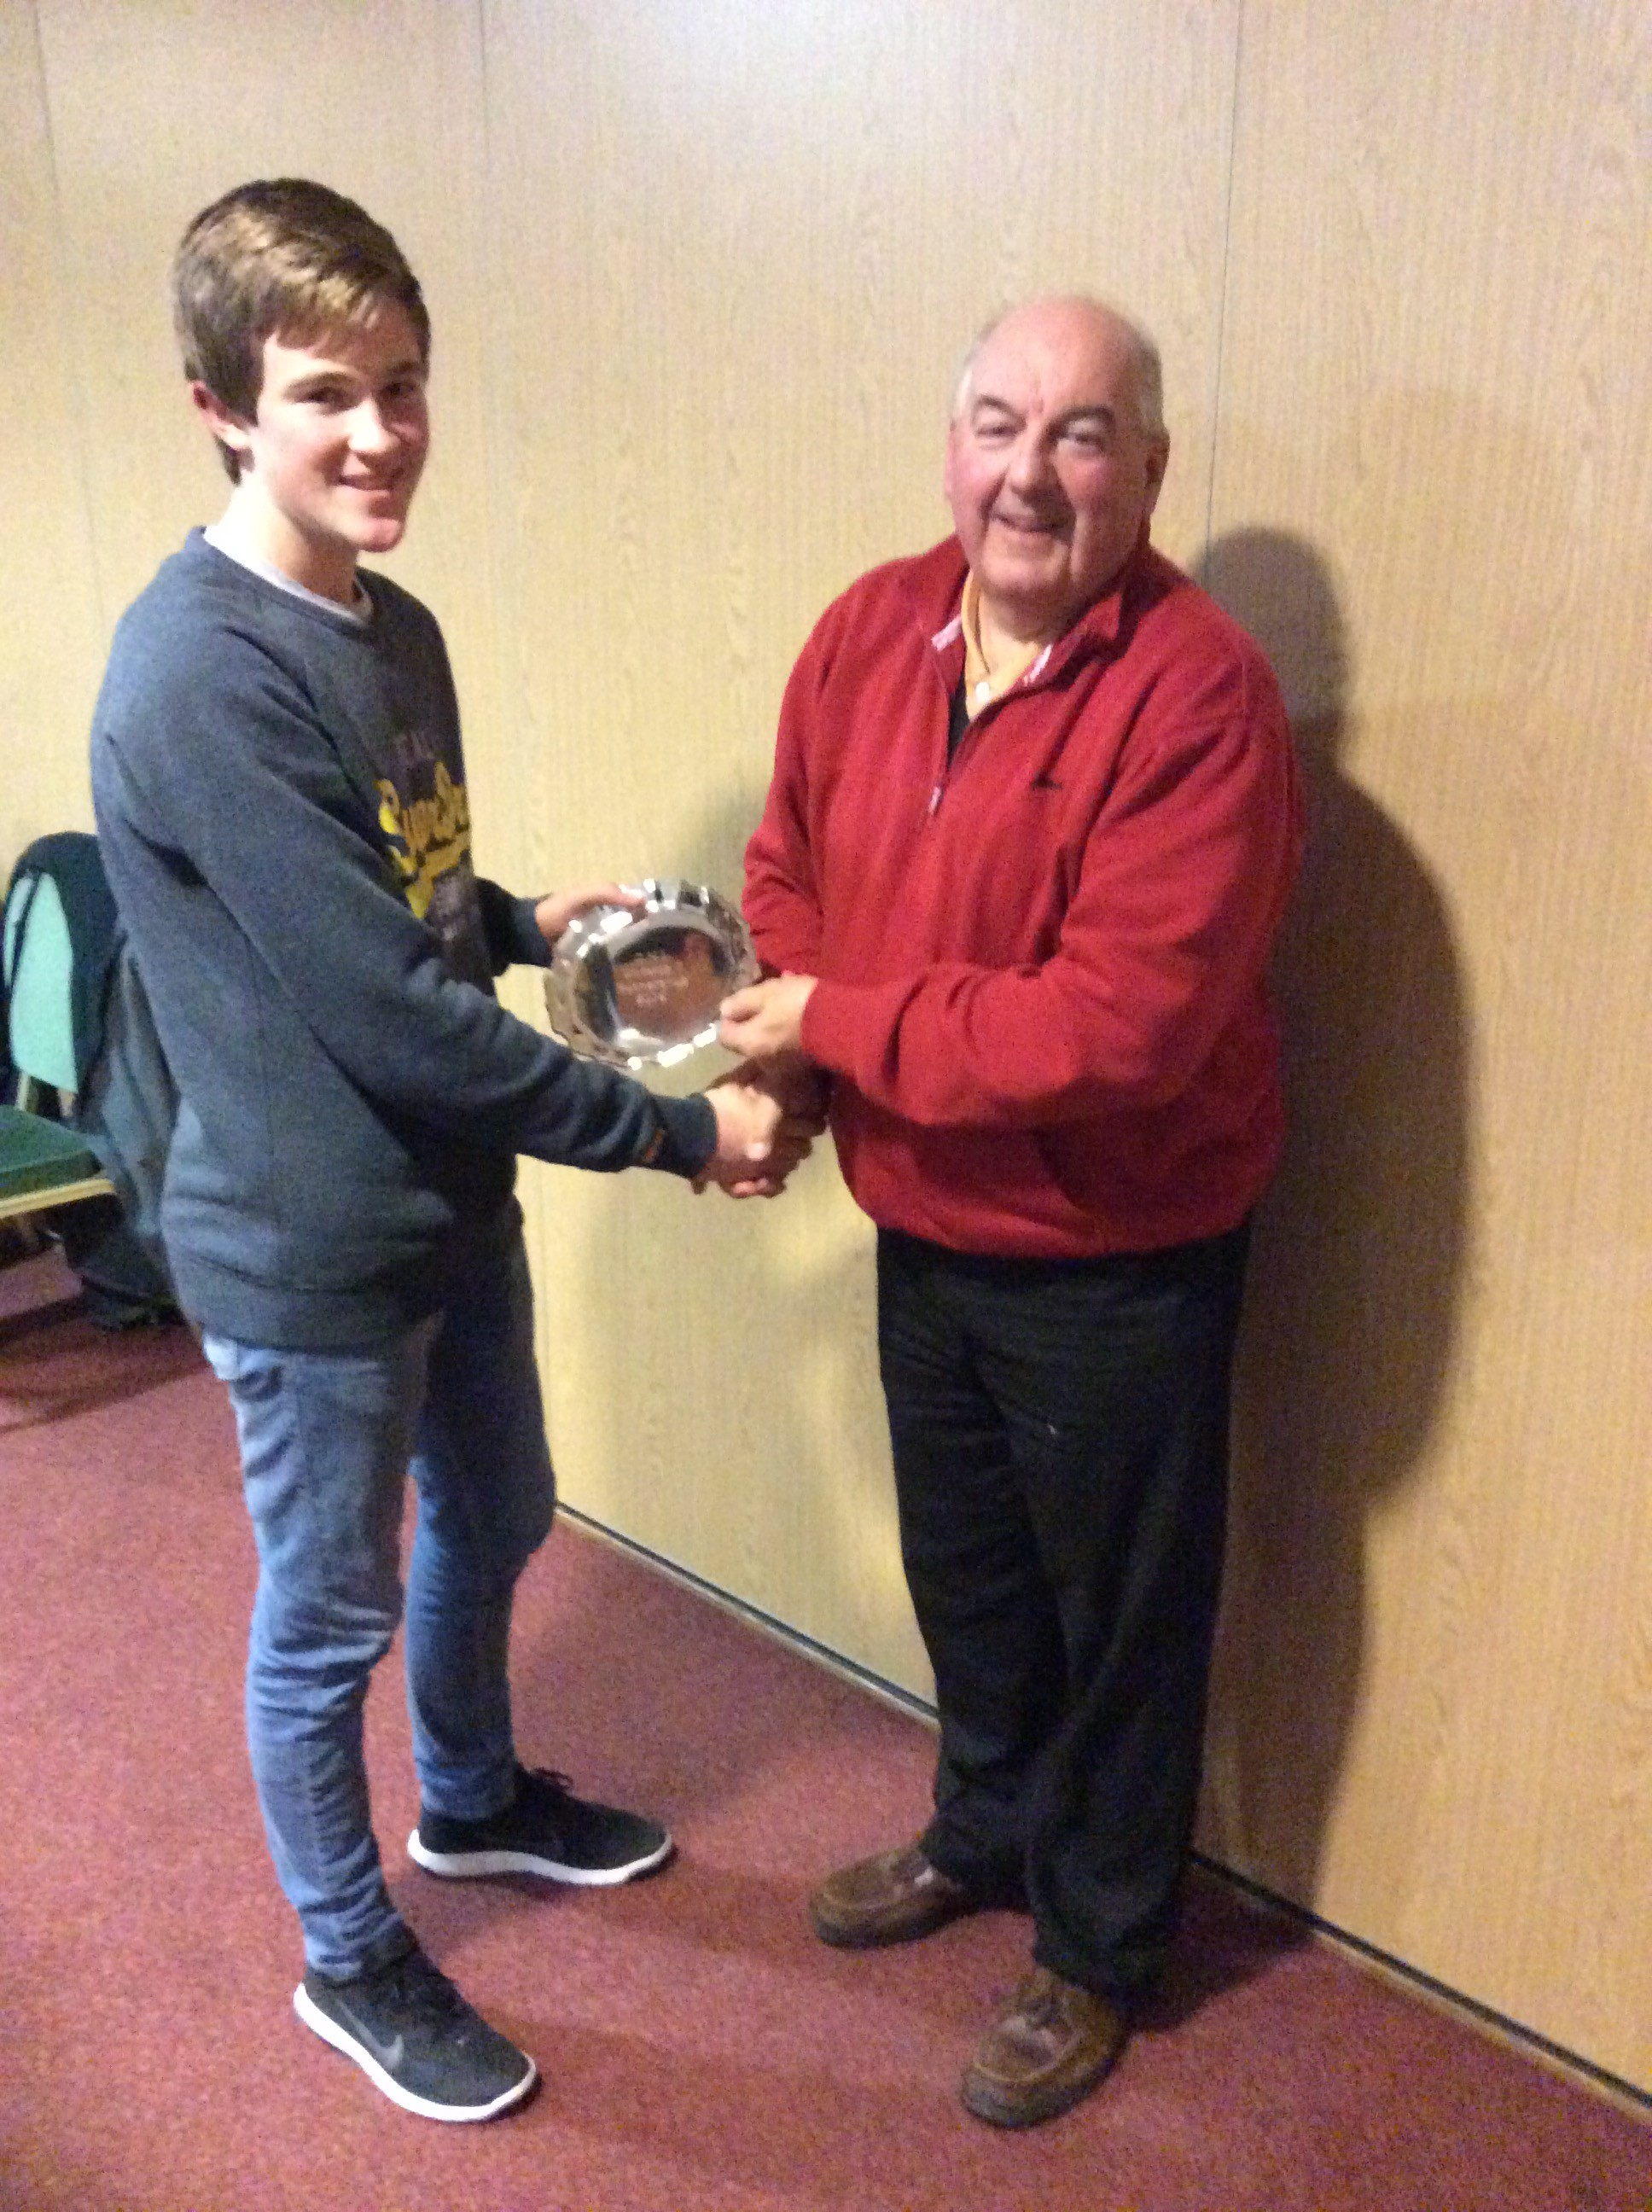 The Colts Cup winner (Young Player of the Year) - Jono Sparks  - who received his award from the Club Chairman